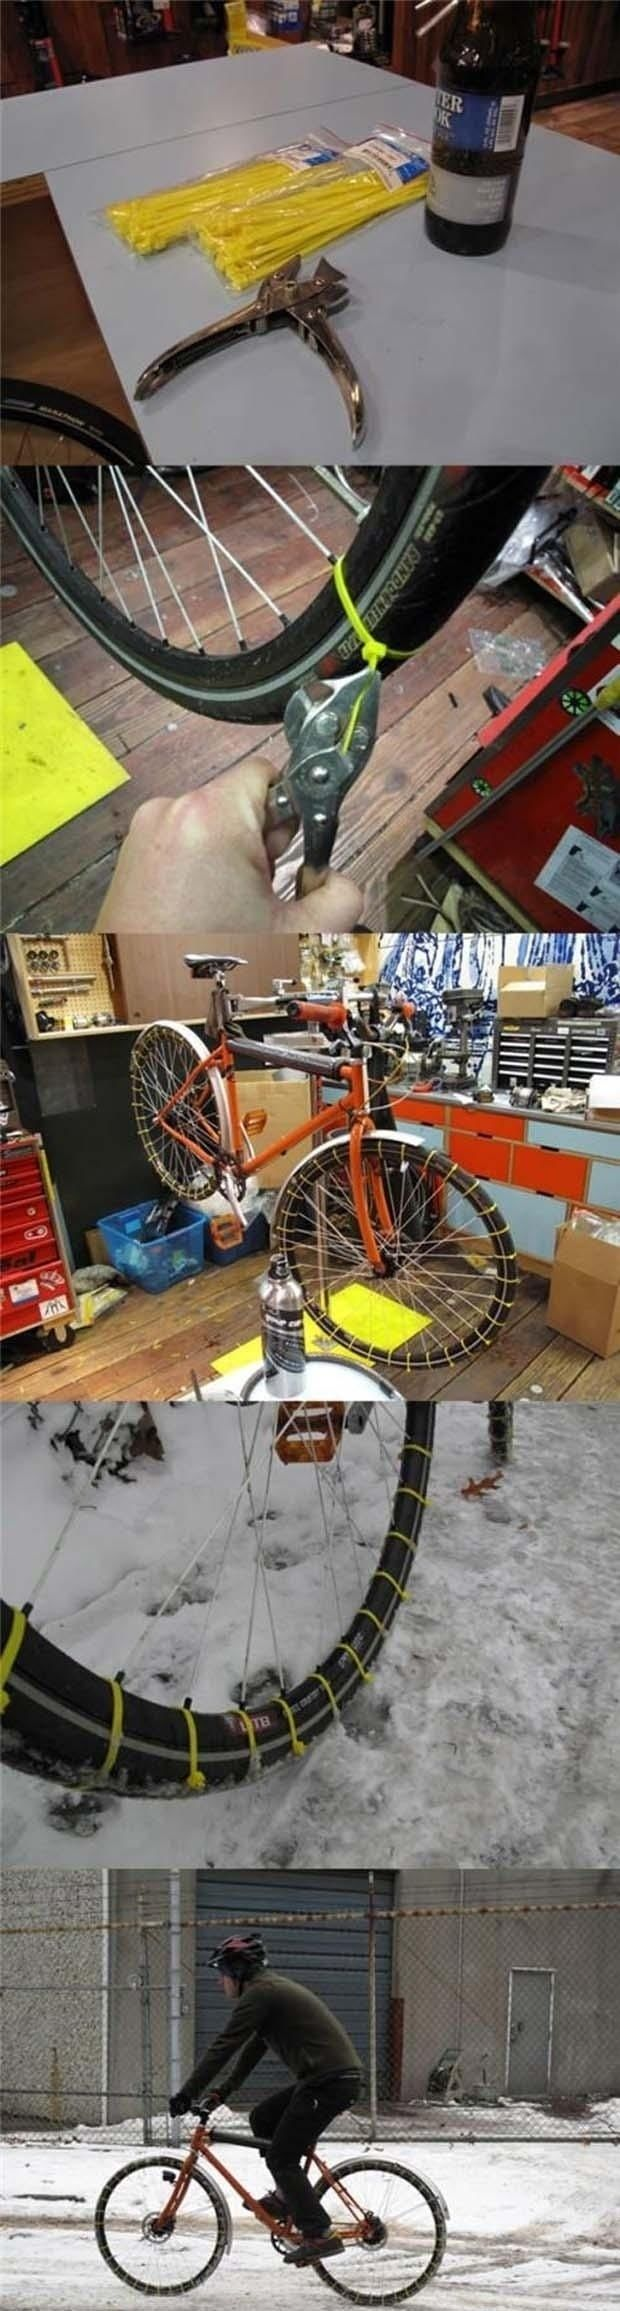 Use zip ties to DIY snow tires for your bike.